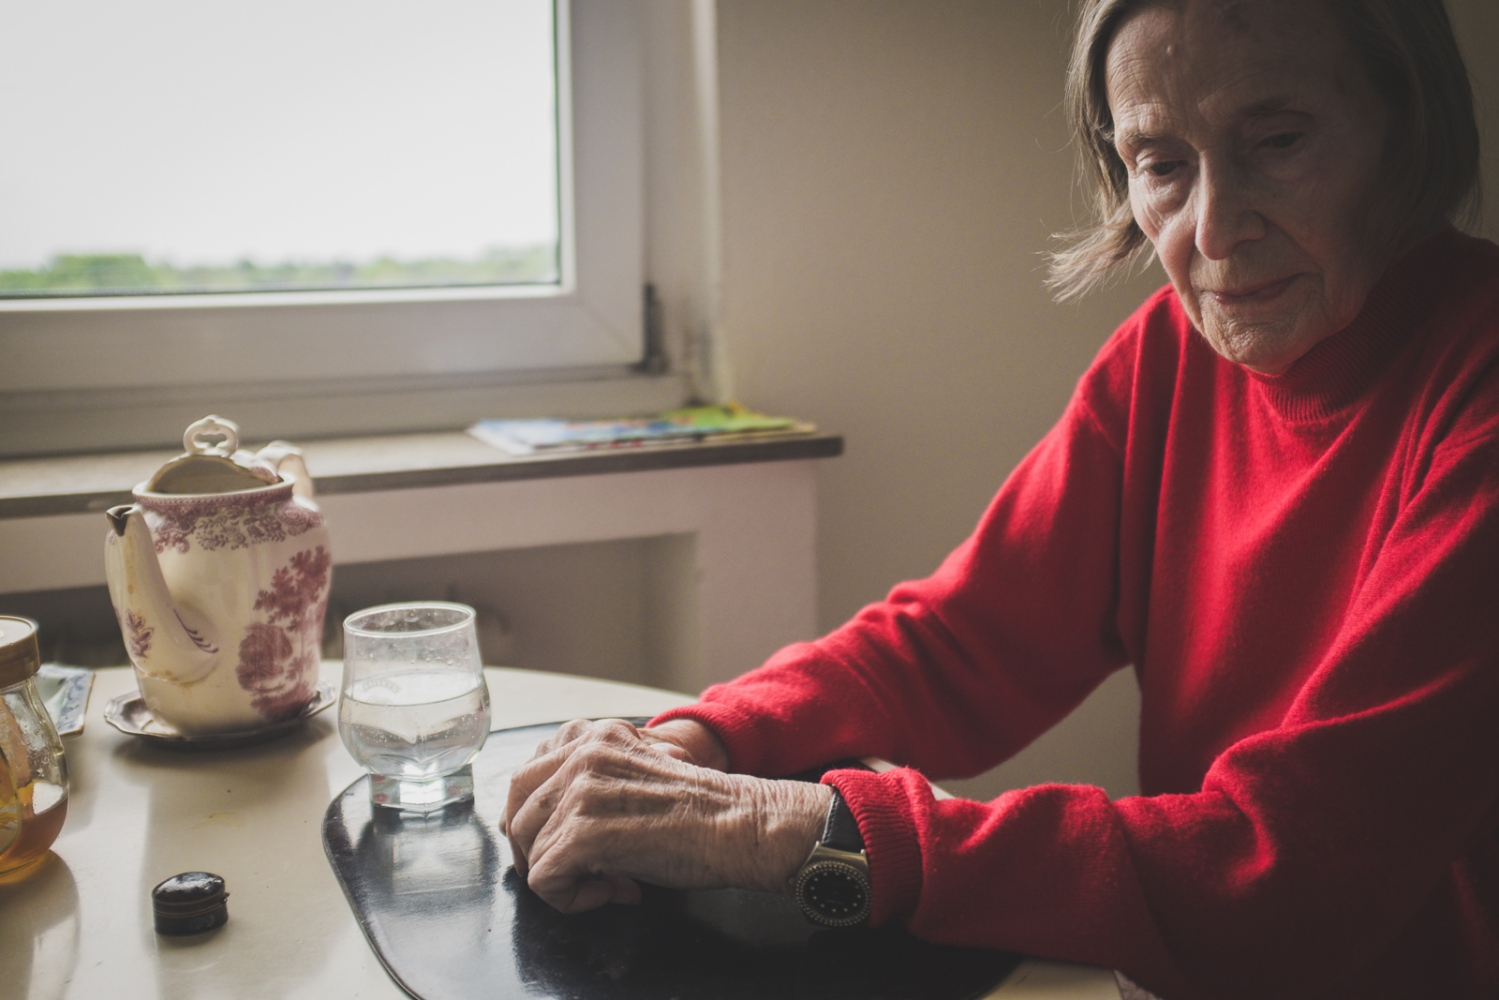 'Yielding'. Helga sitting in her kitchen, while her daughter Nicoletta finalises preparations for the departure to the retirement home. Neuss, GERMANY, May 29, 2015.